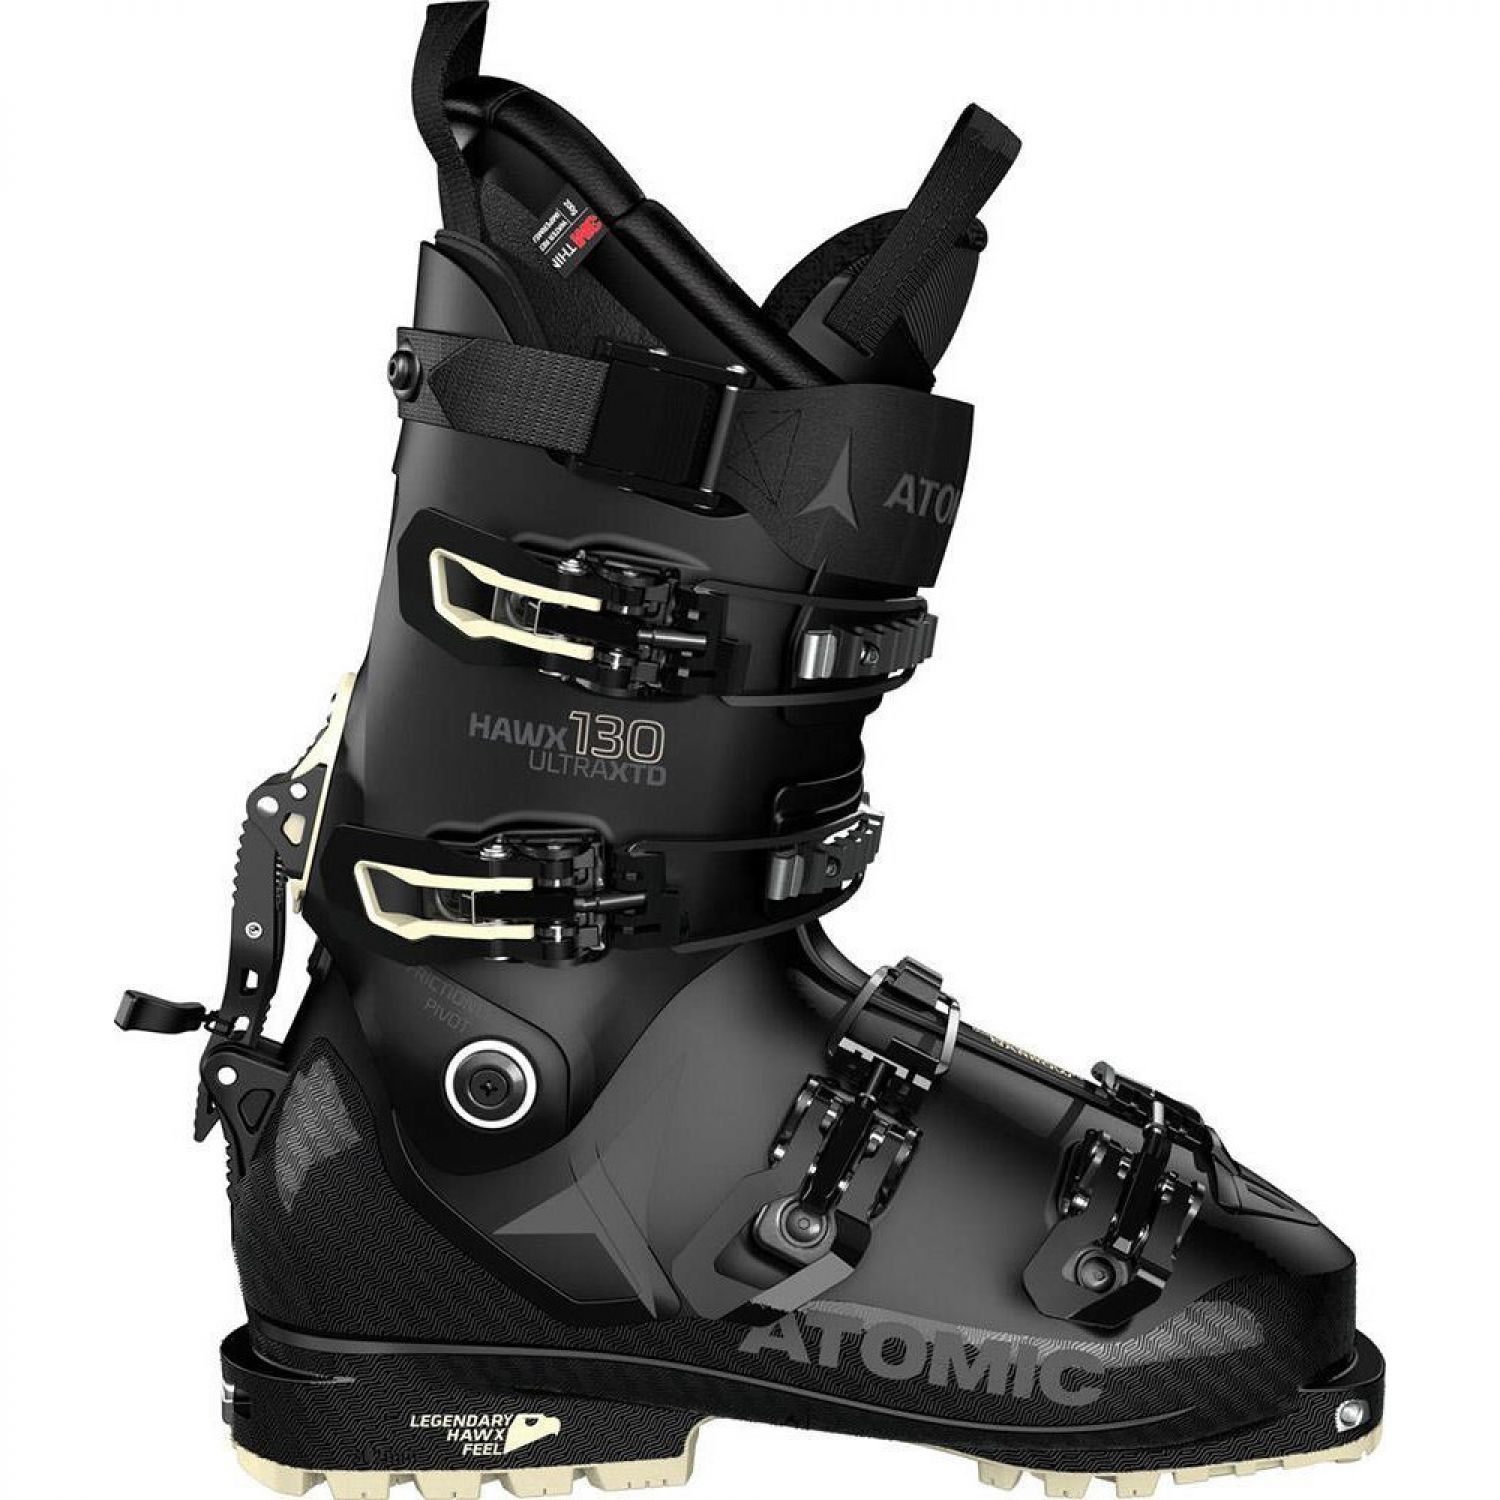 Atomic | Hawx Ultra XTD 130 19/20 | Freetourenschuh